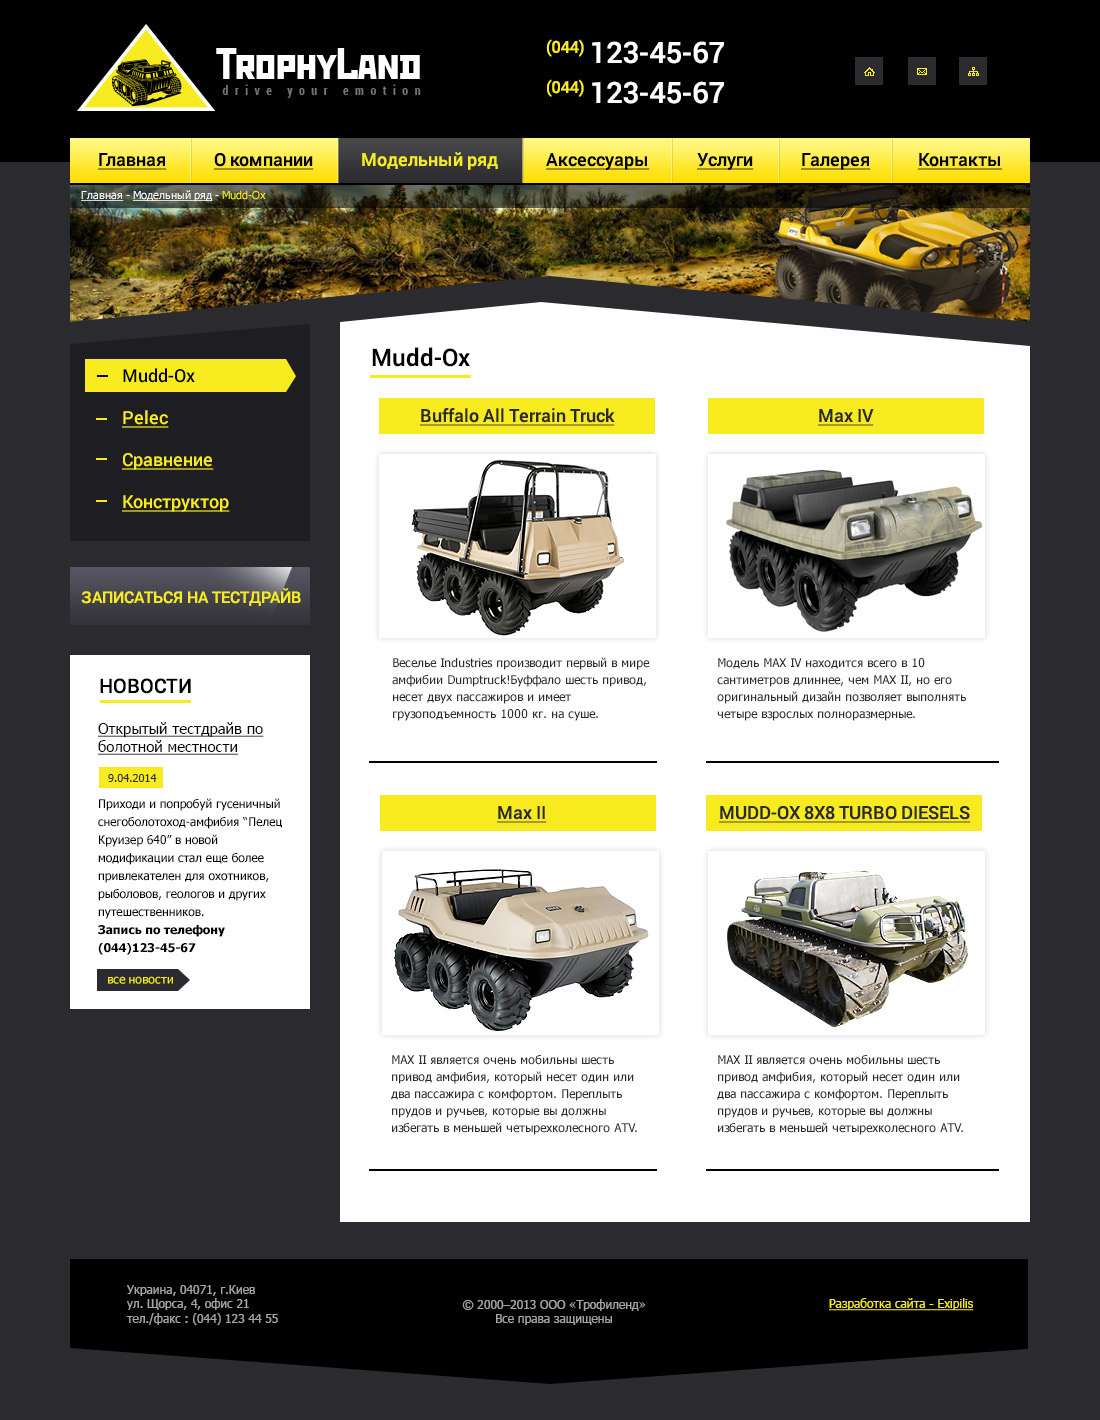 Brand page design of TrophyLand website